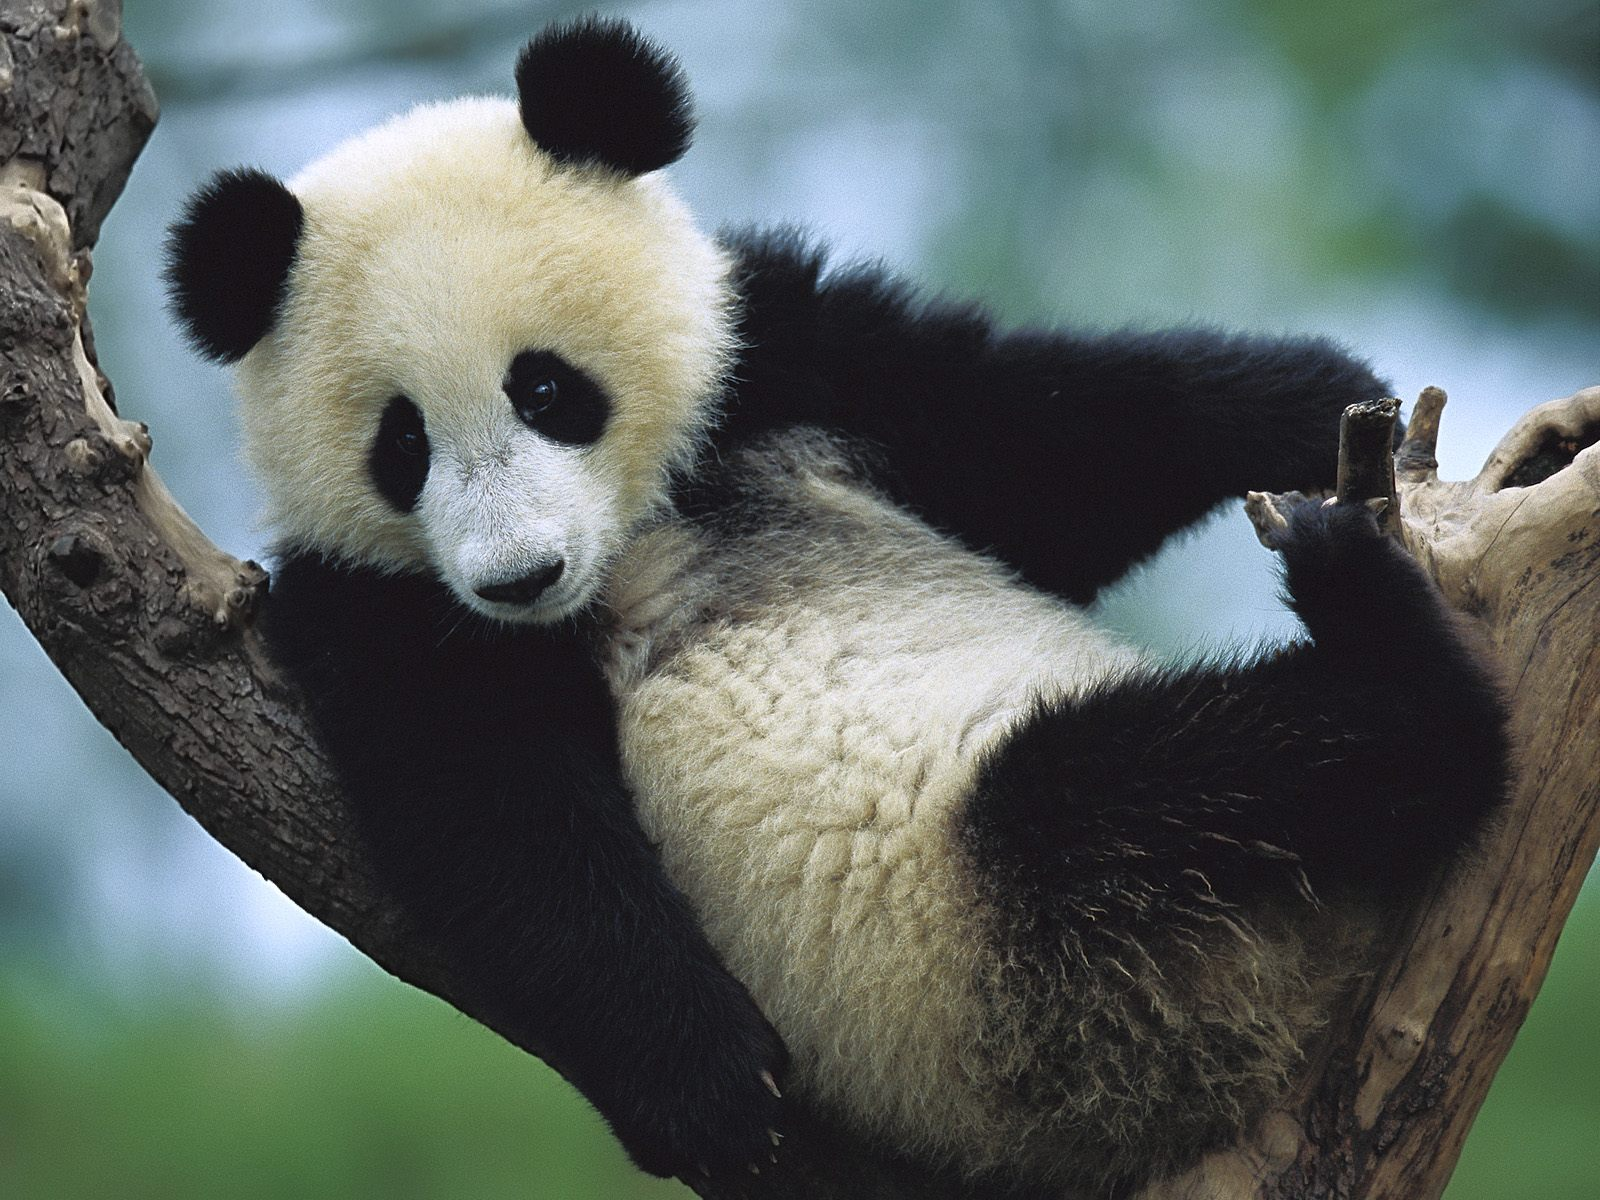 Amazing Giant Panda  Endangered Species  Giant Pandas Facts  Photos